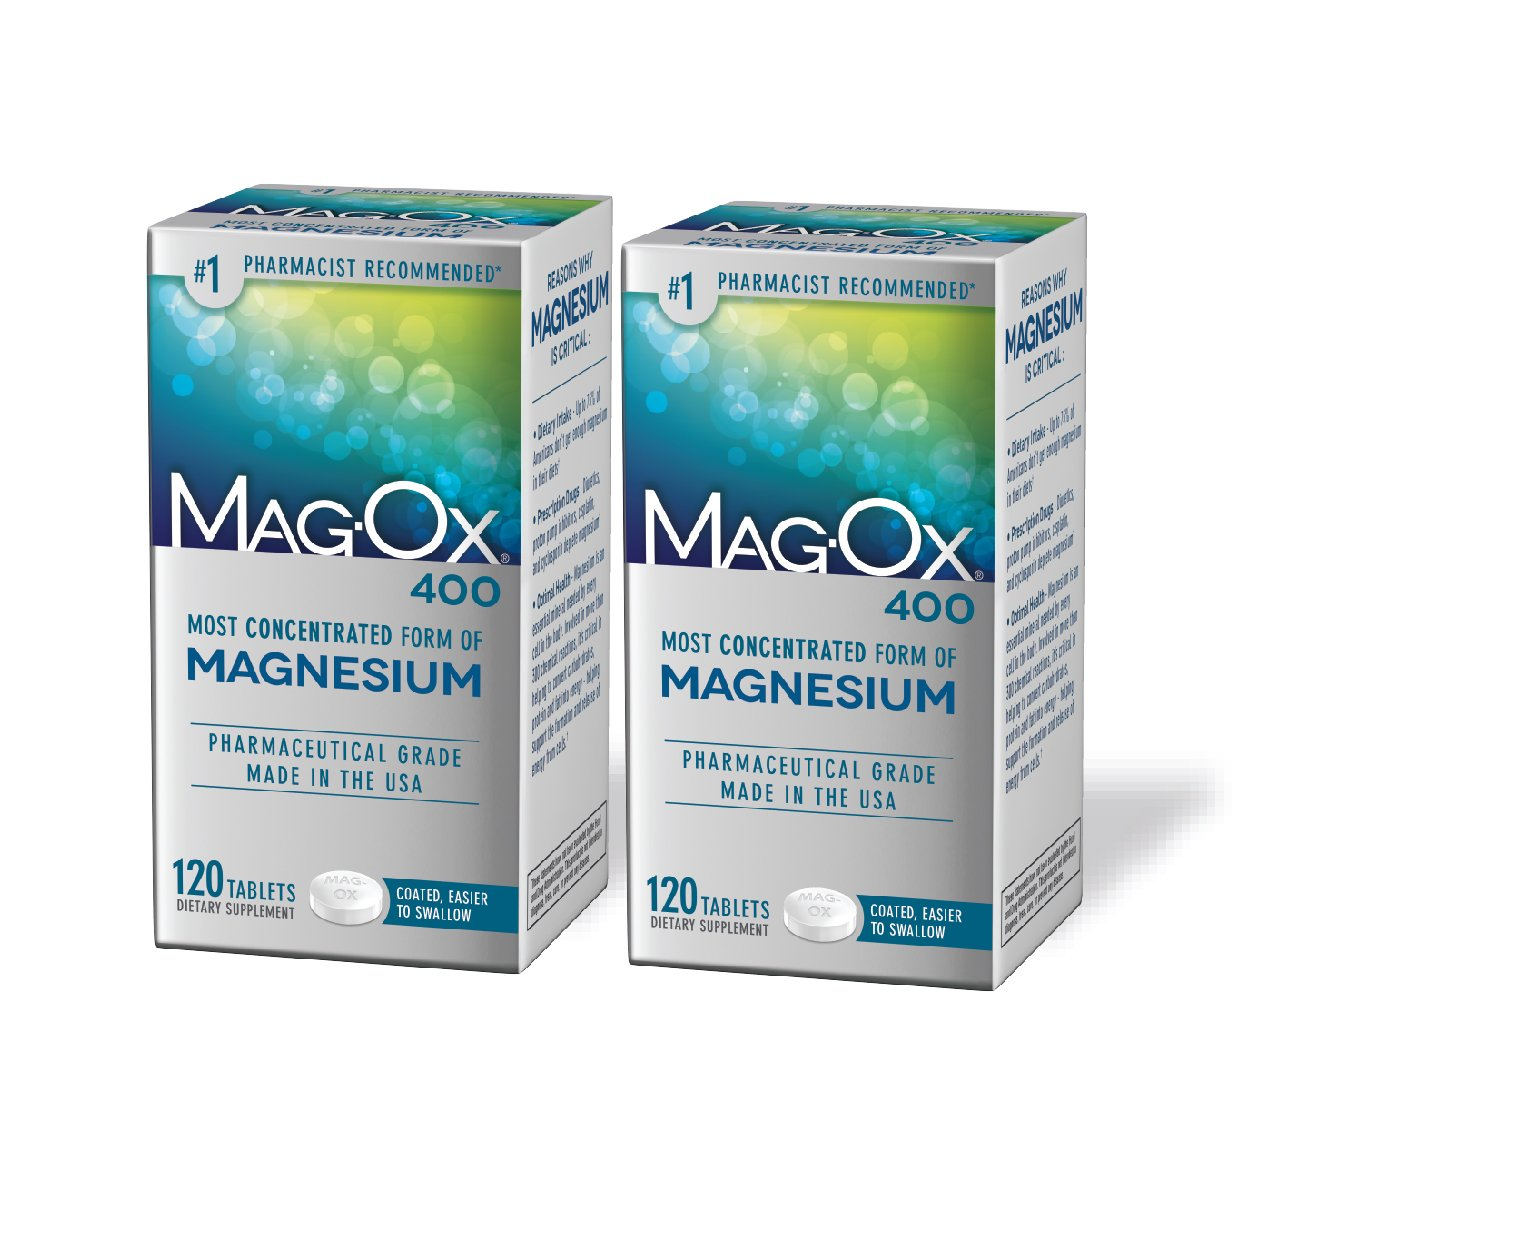 Mag-Ox Magnesium Supplement, Magnesium Oxide Metabolism Booster, 120 Count, 2 Pack